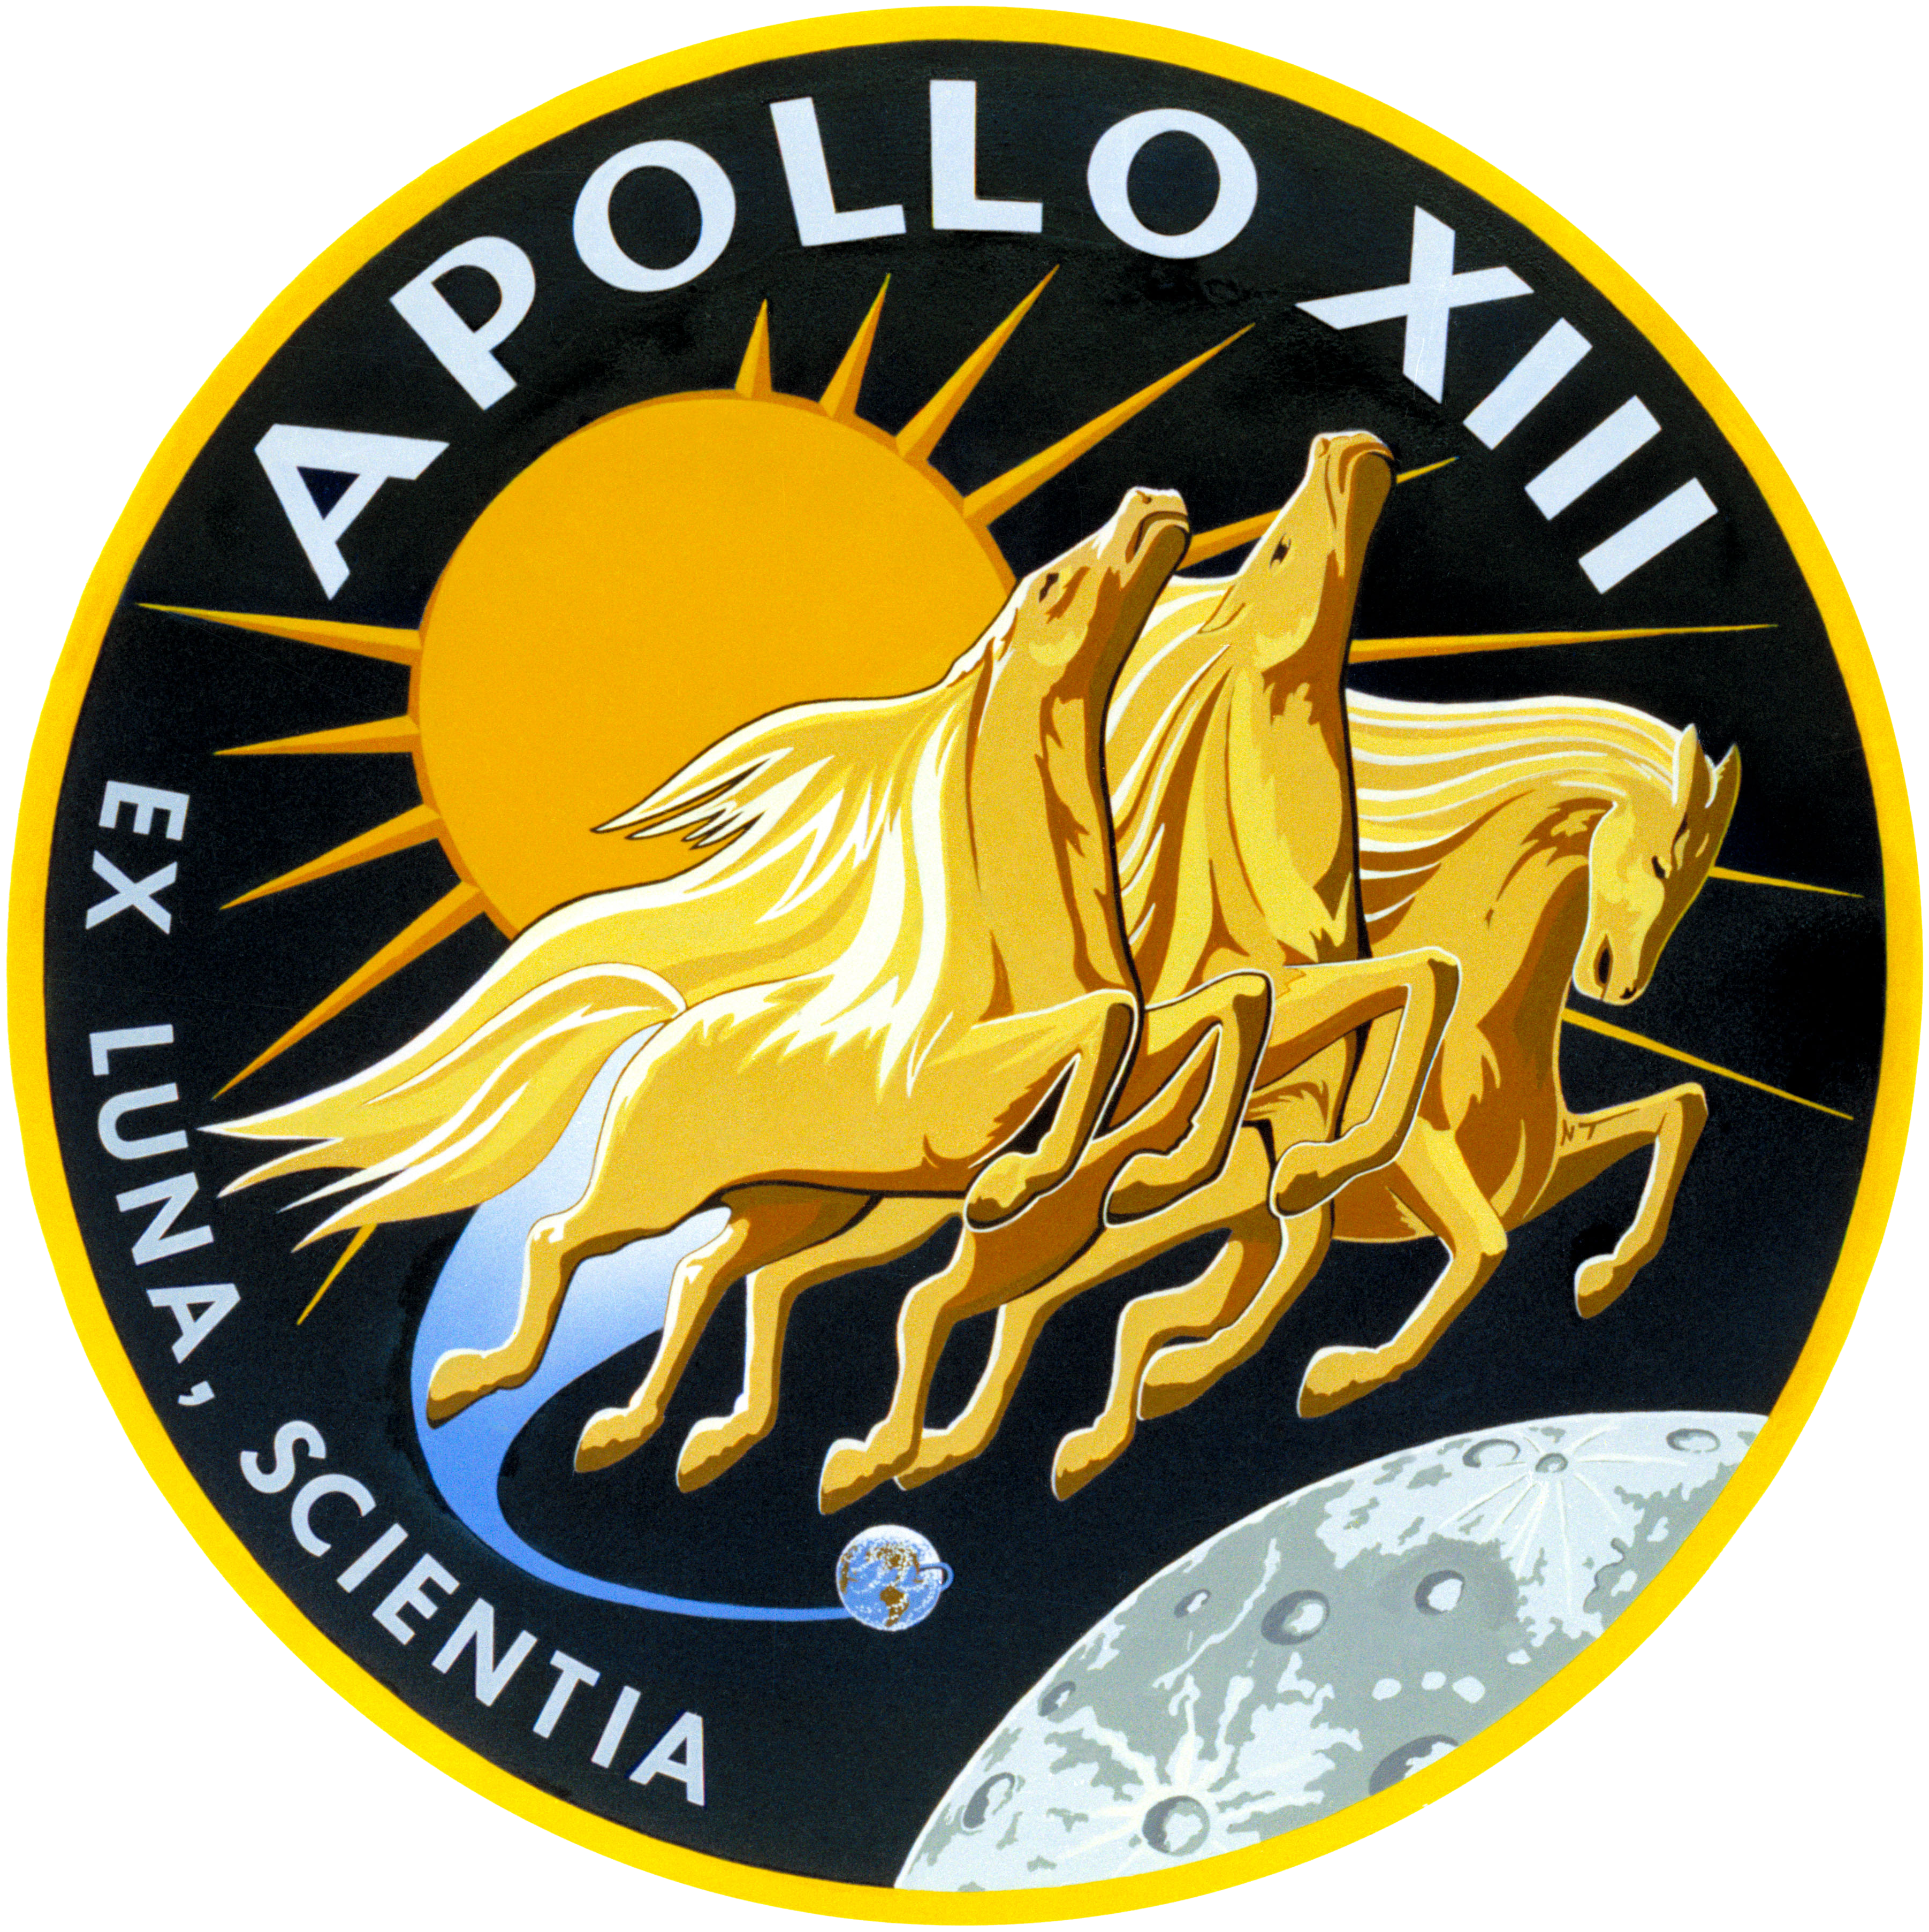 File:Apollo 13-insignia.png - Wikipedia, the free encyclopedia